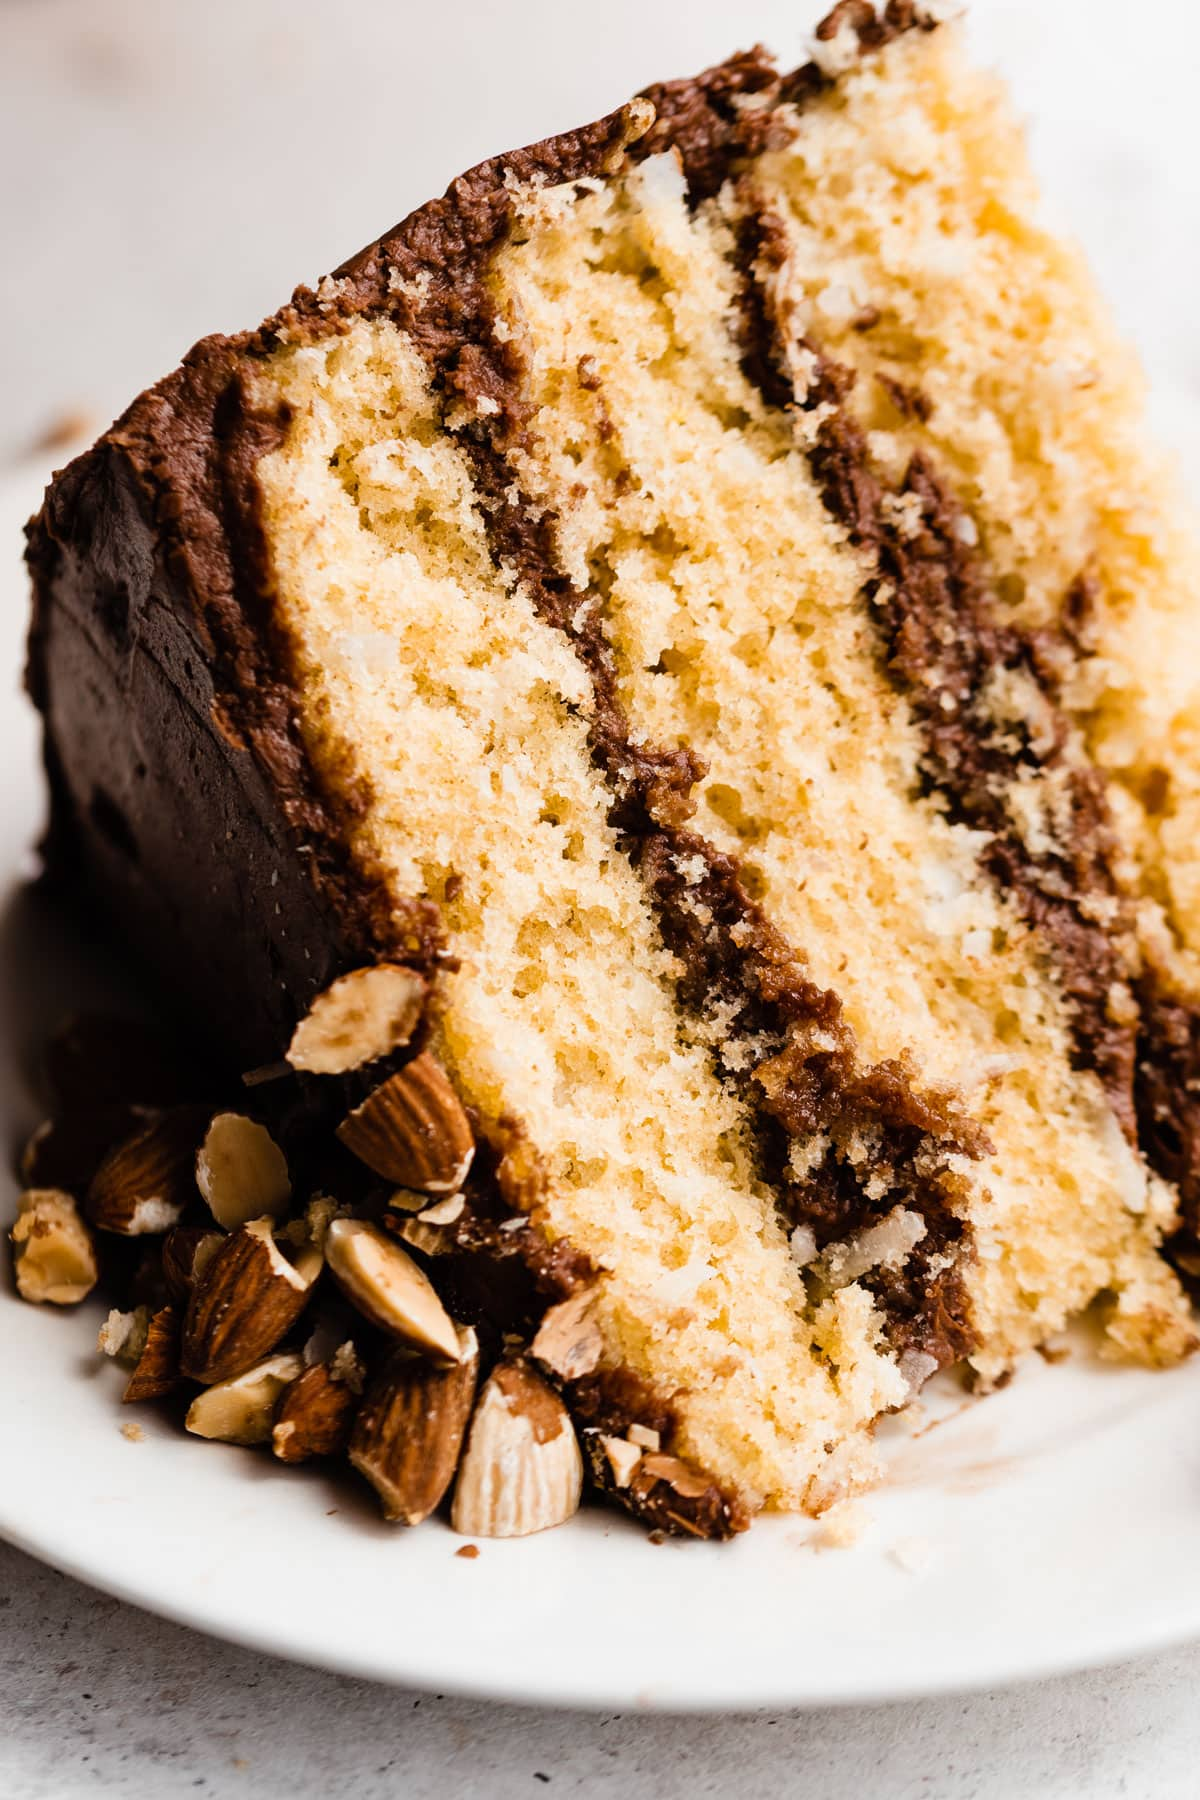 Almond Joy Cake-Coconut Cake with Chocolate Frosting and Crunchy Almonds. Tastes just like an almond joy candy bar!